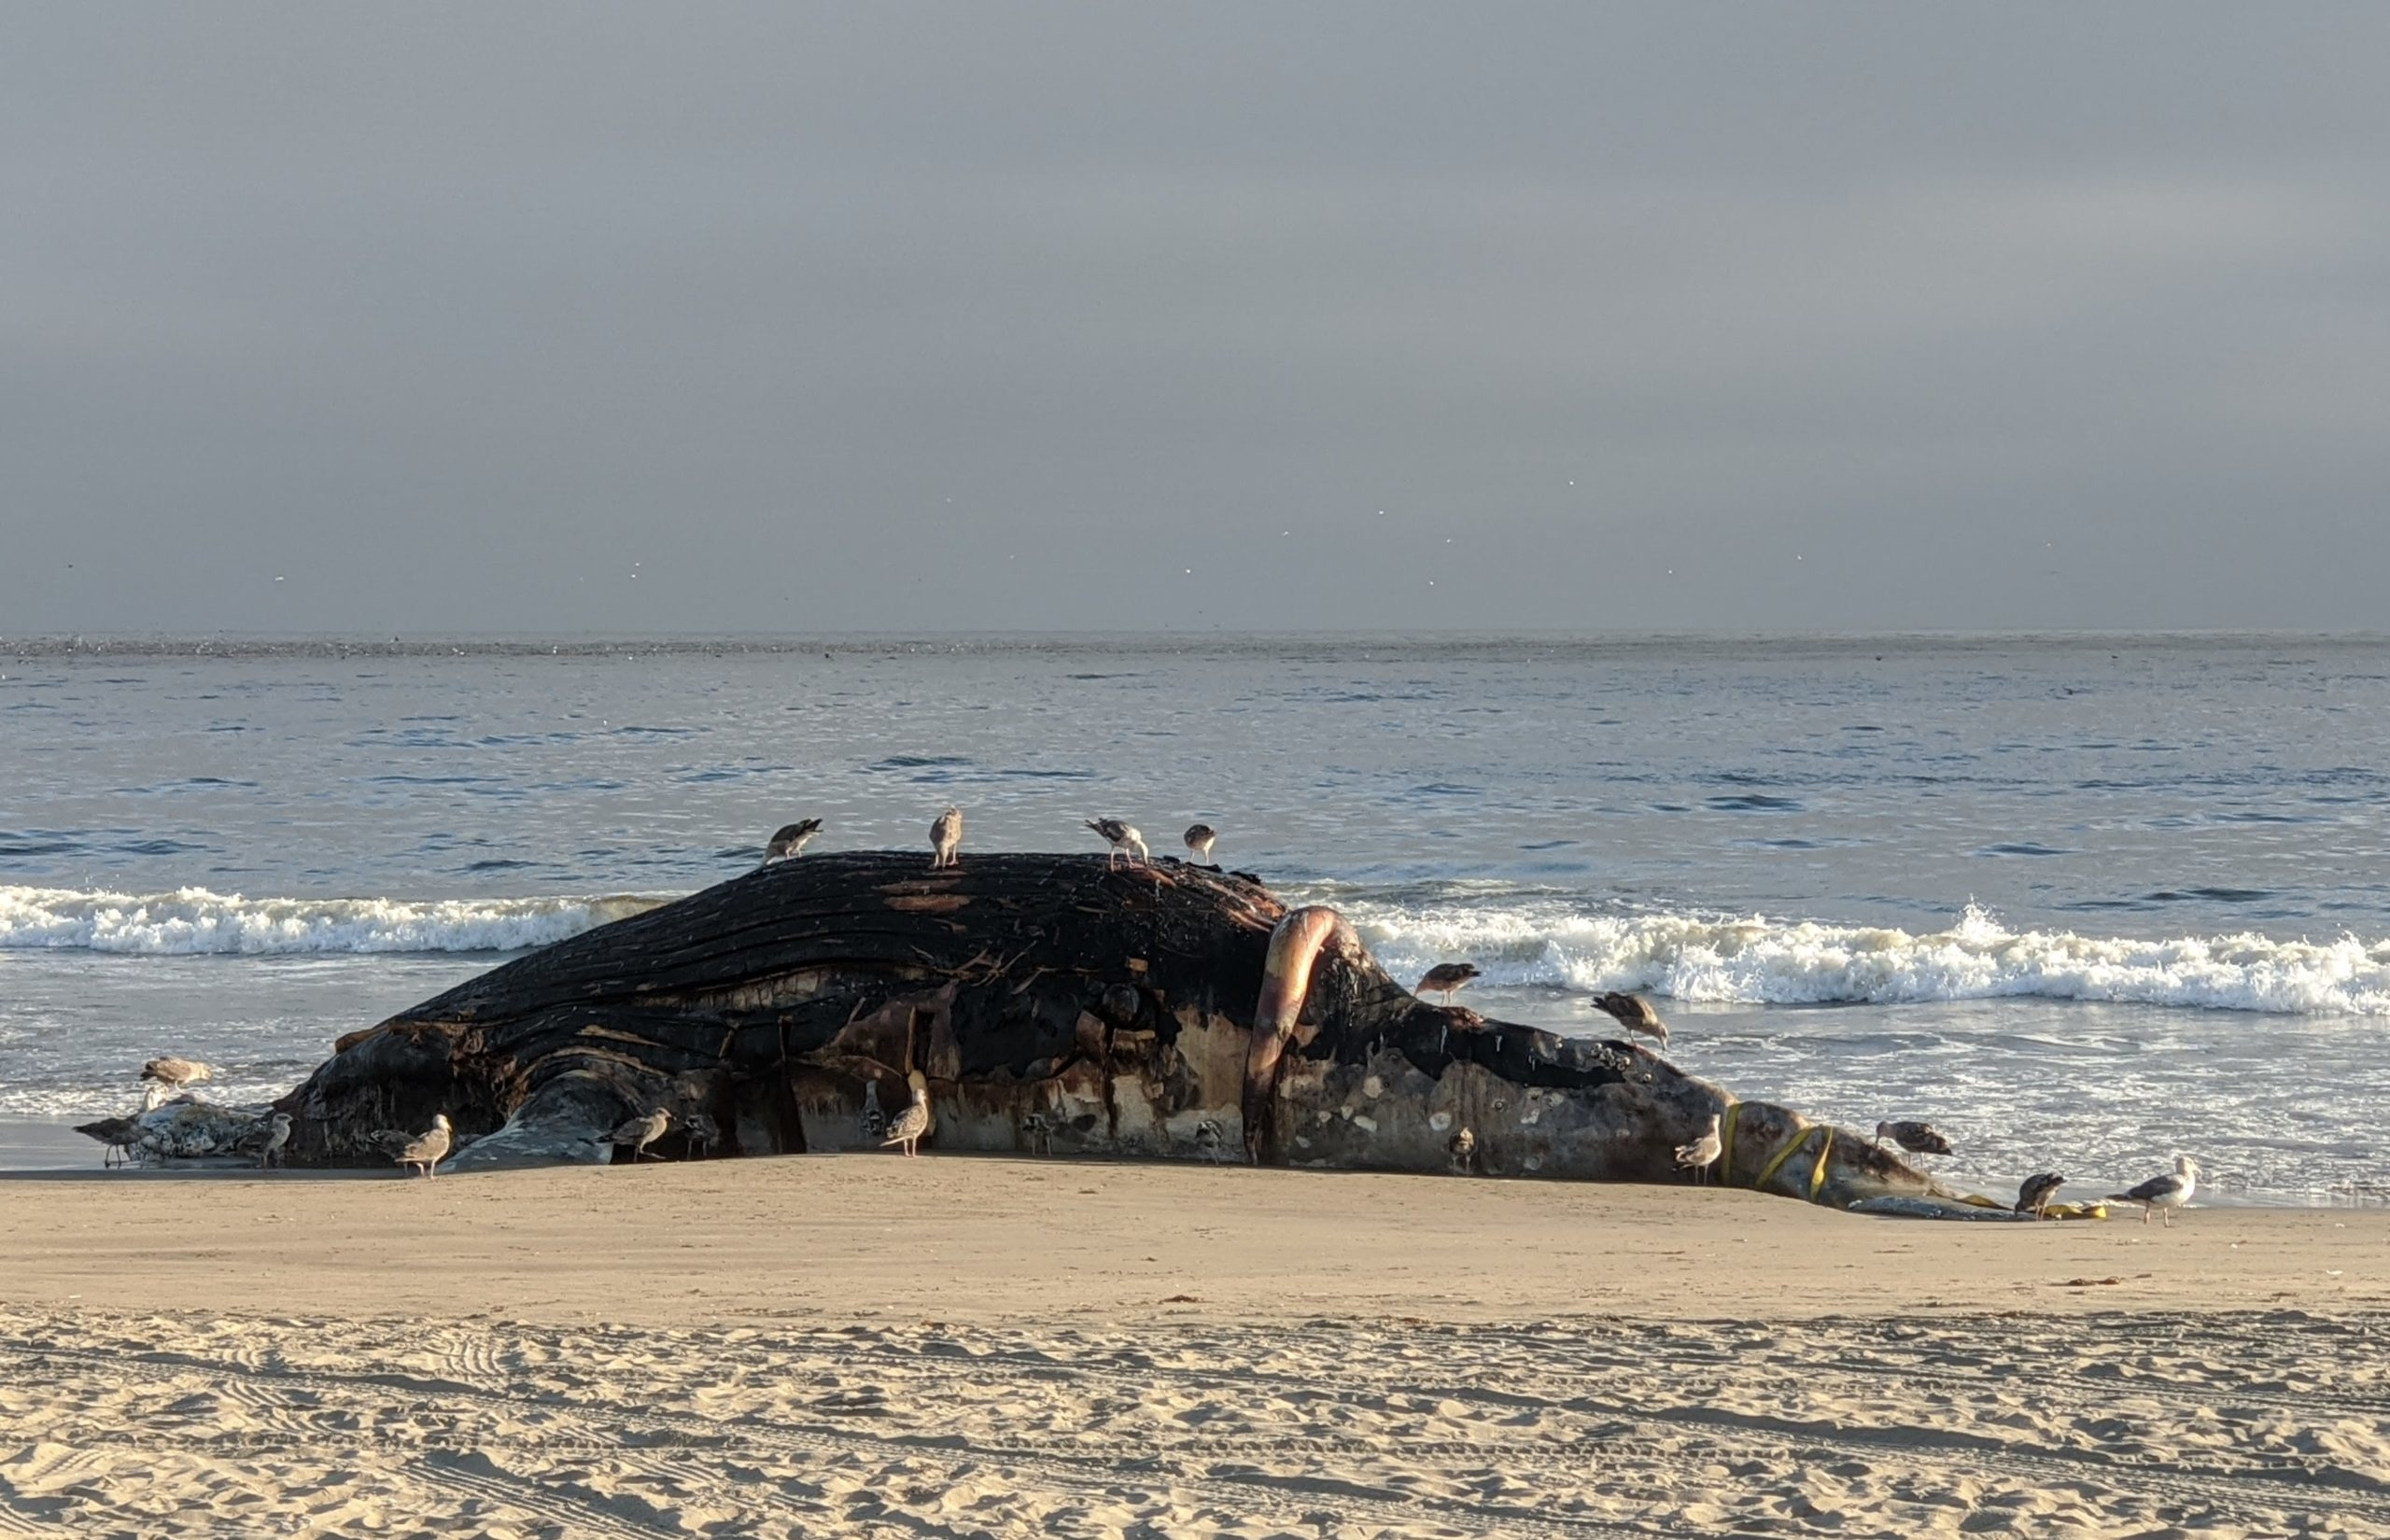 A whale carcass lies supine on the beach, covered in birds with a large organ splayed over its body.